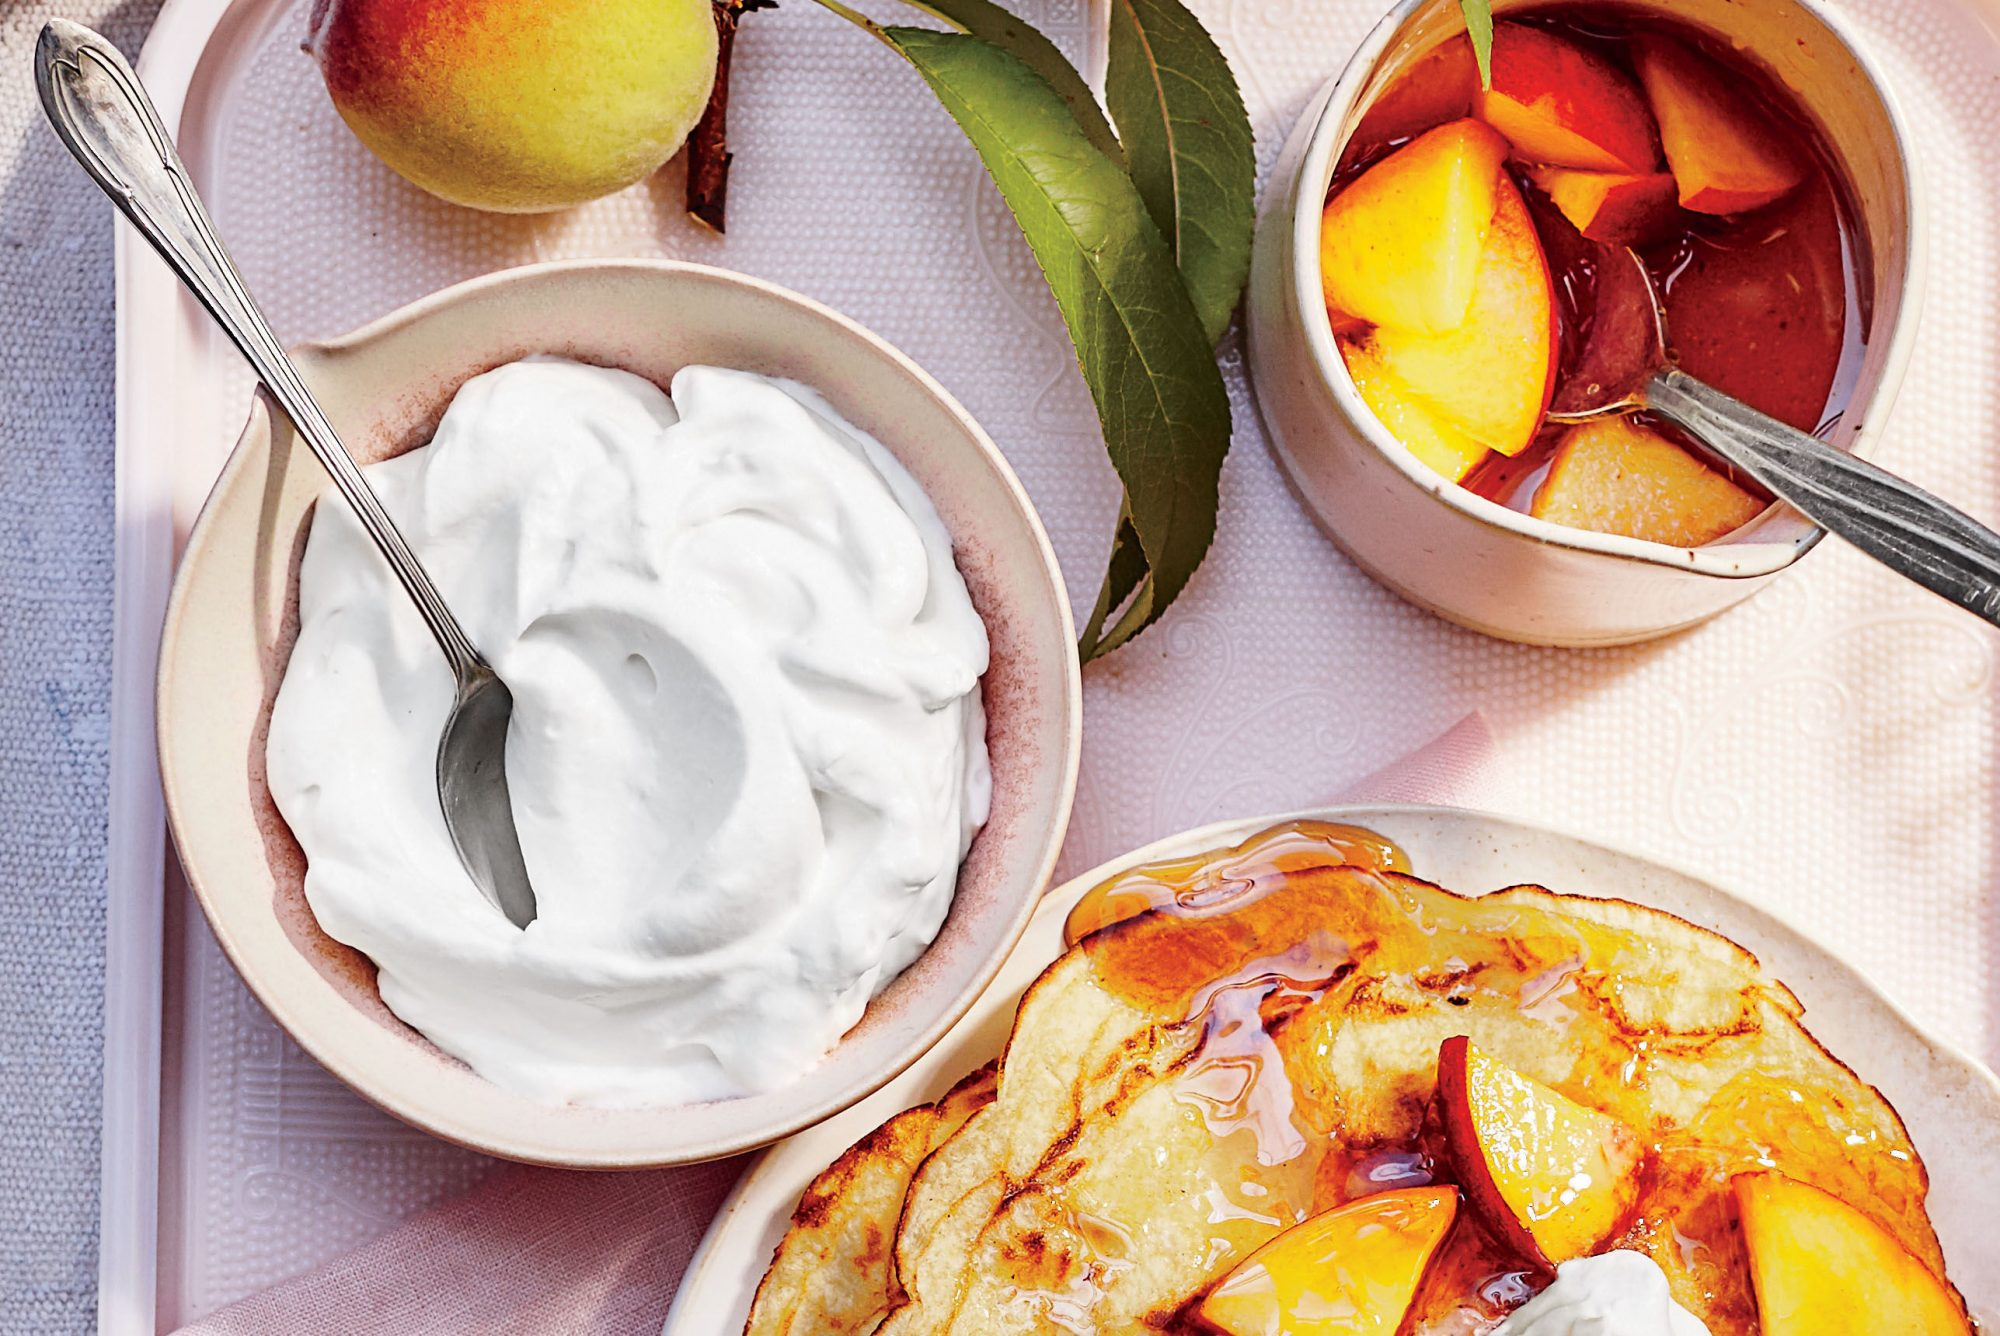 Whipped Cream Isn't Just for Sweets—Here's How to Use It to Garnish Savory Dishes, Too